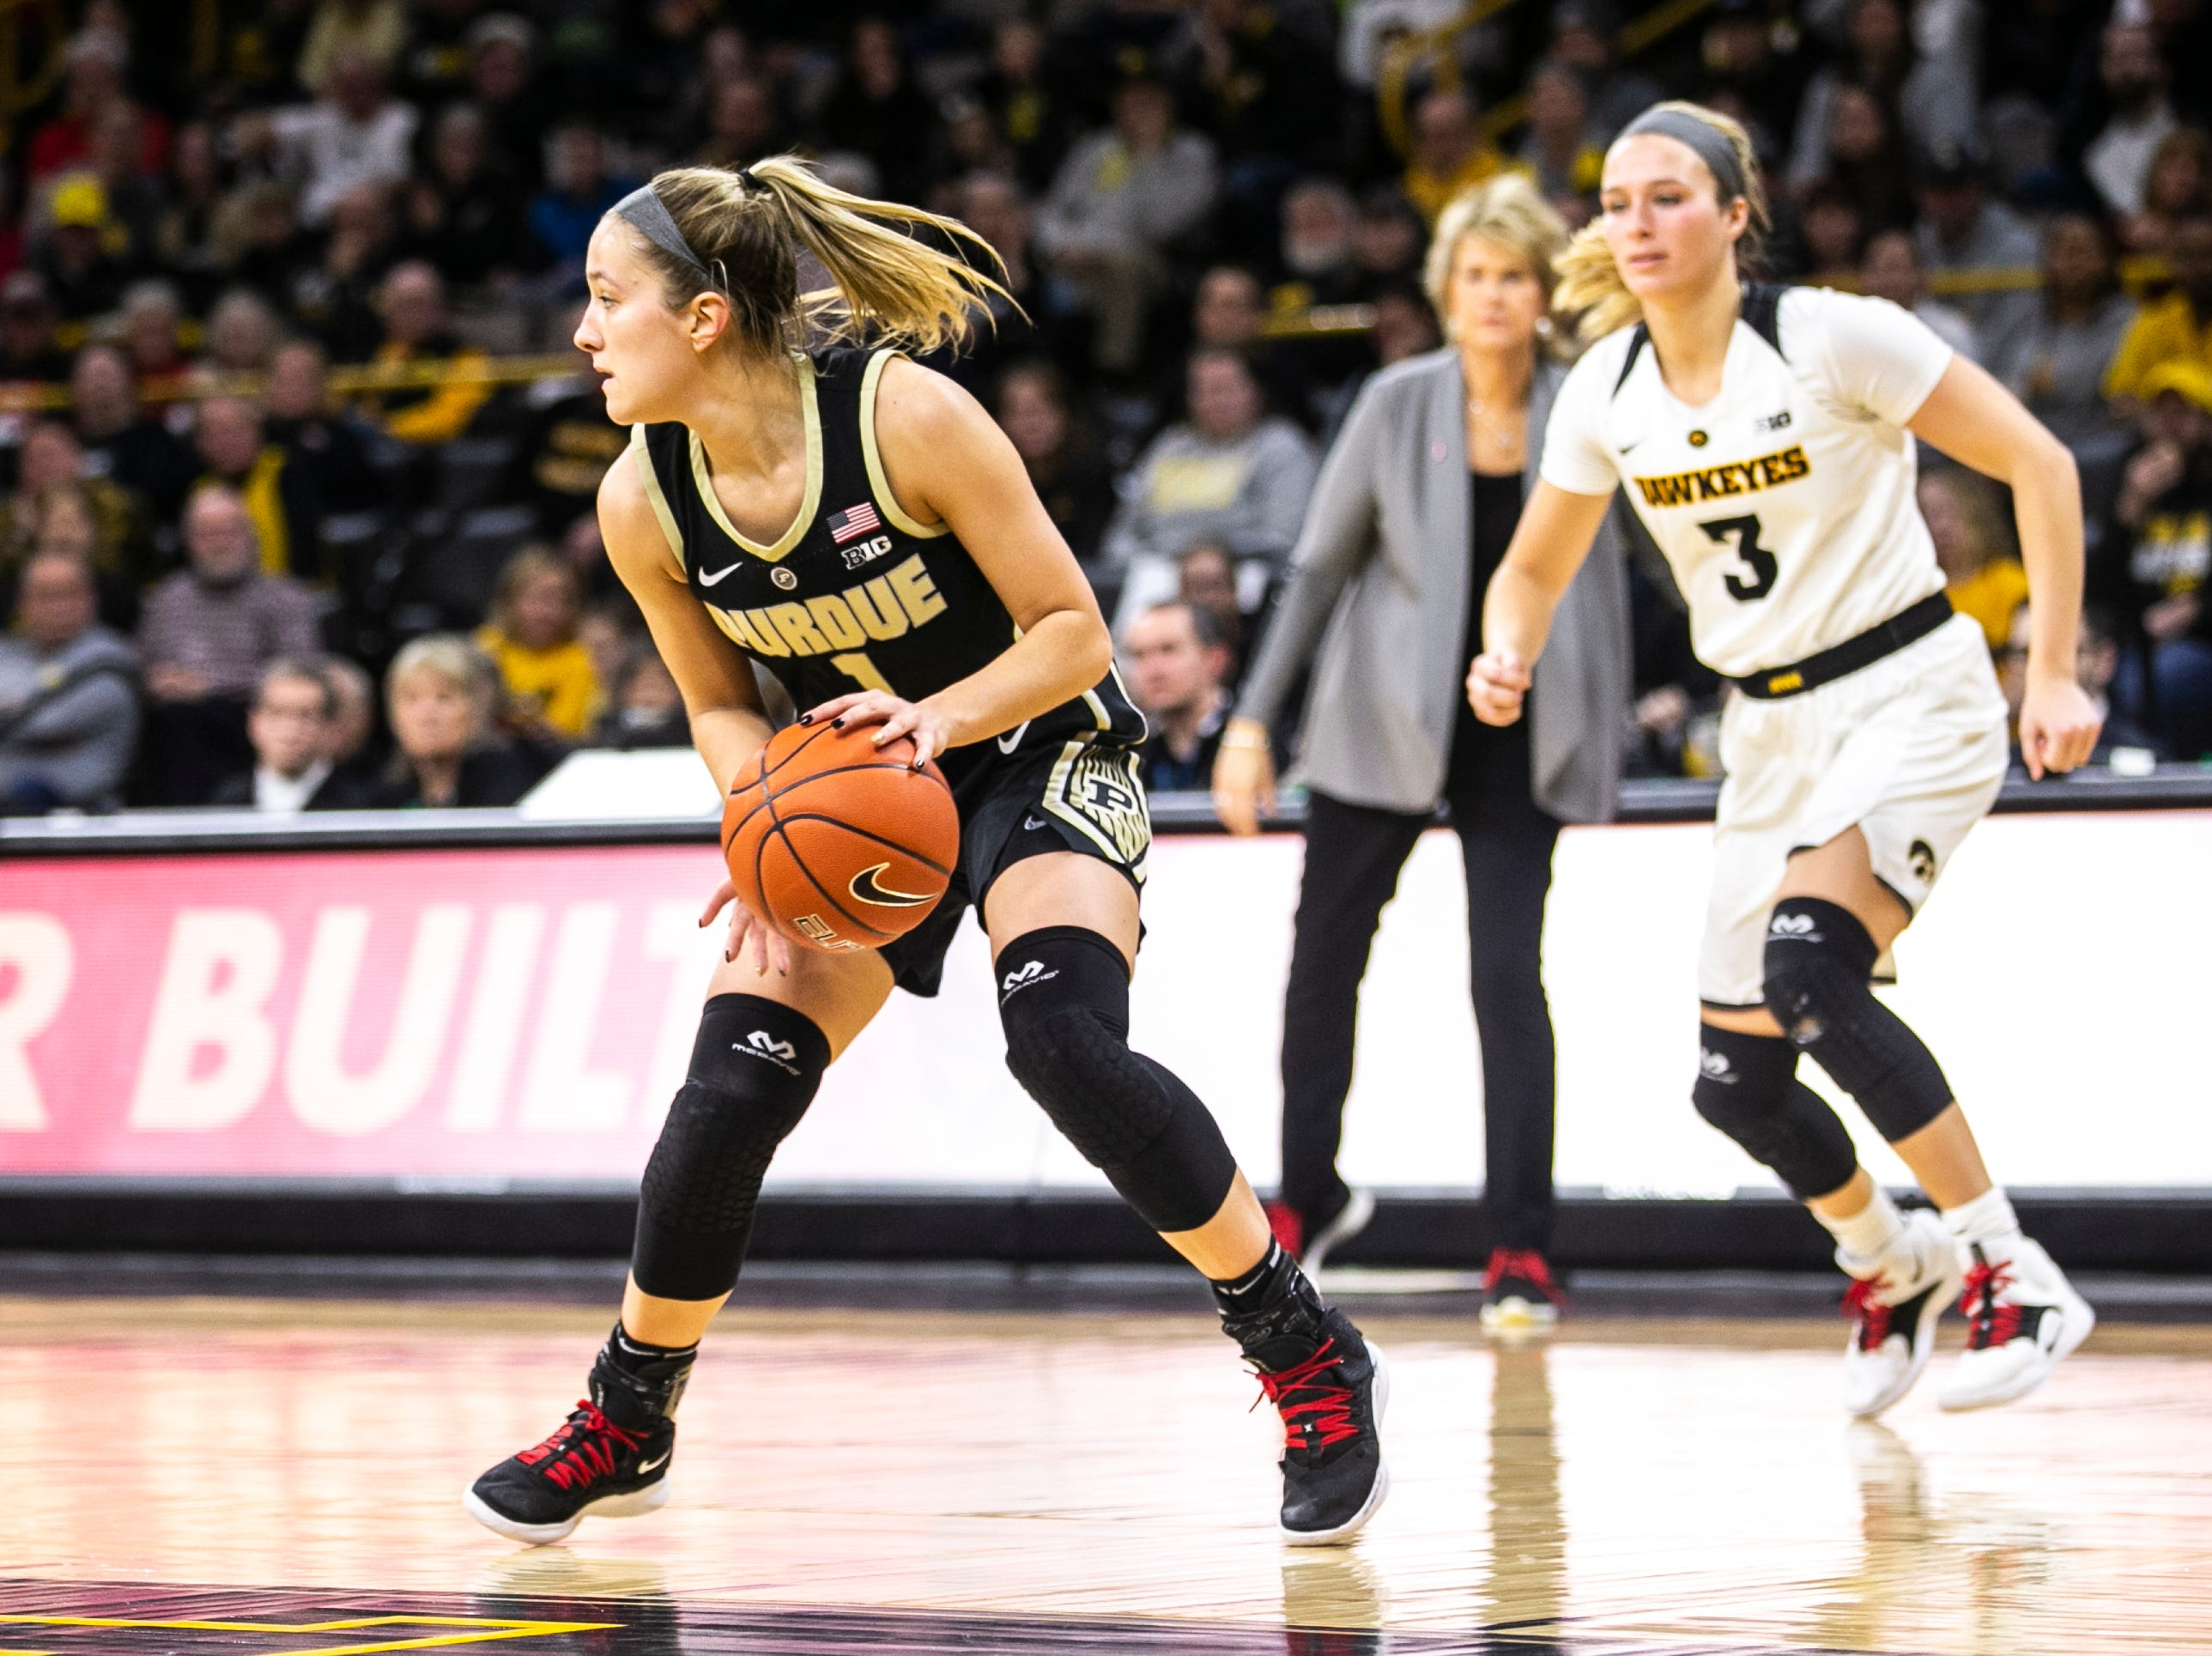 Purdue guard Karissa McLaughlin grabs a rebound during a NCAA Big Ten Conference women's basketball game on Sunday, Jan. 27, 2019, at Carver-Hawkeye Arena in Iowa City, Iowa.